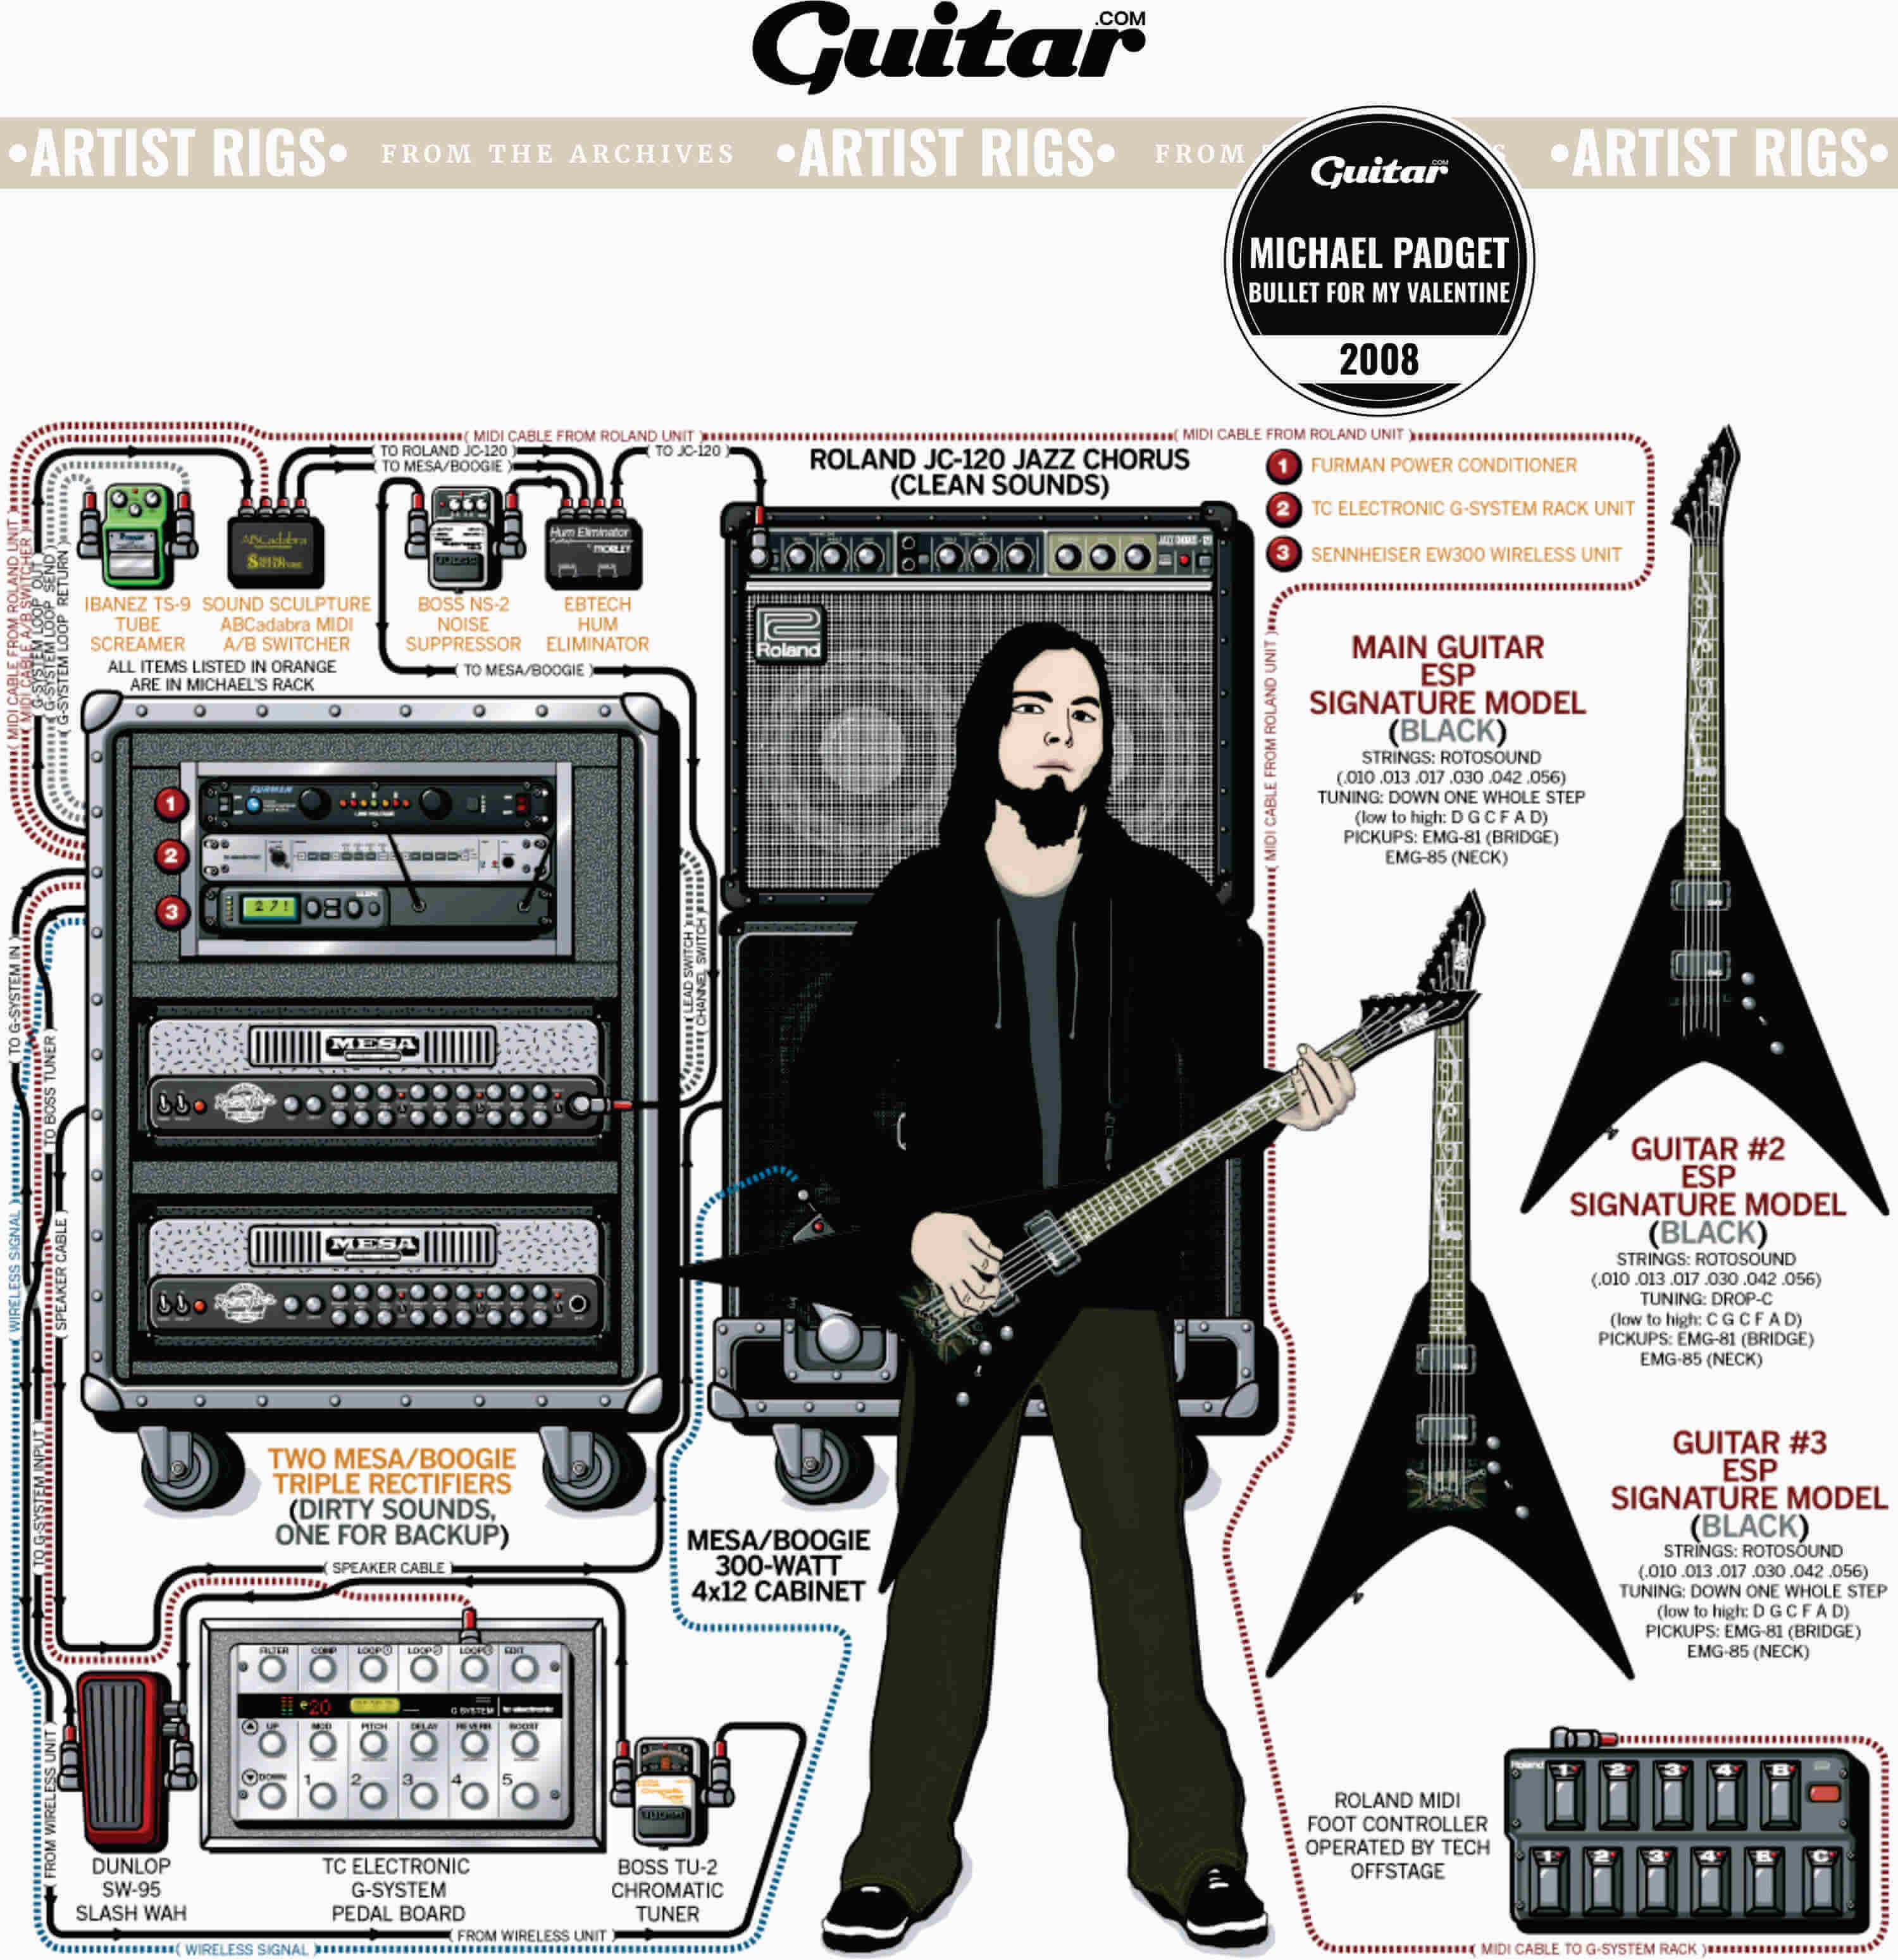 Rig Diagram: Michael Padget, Bullet For My Valentine (2008)